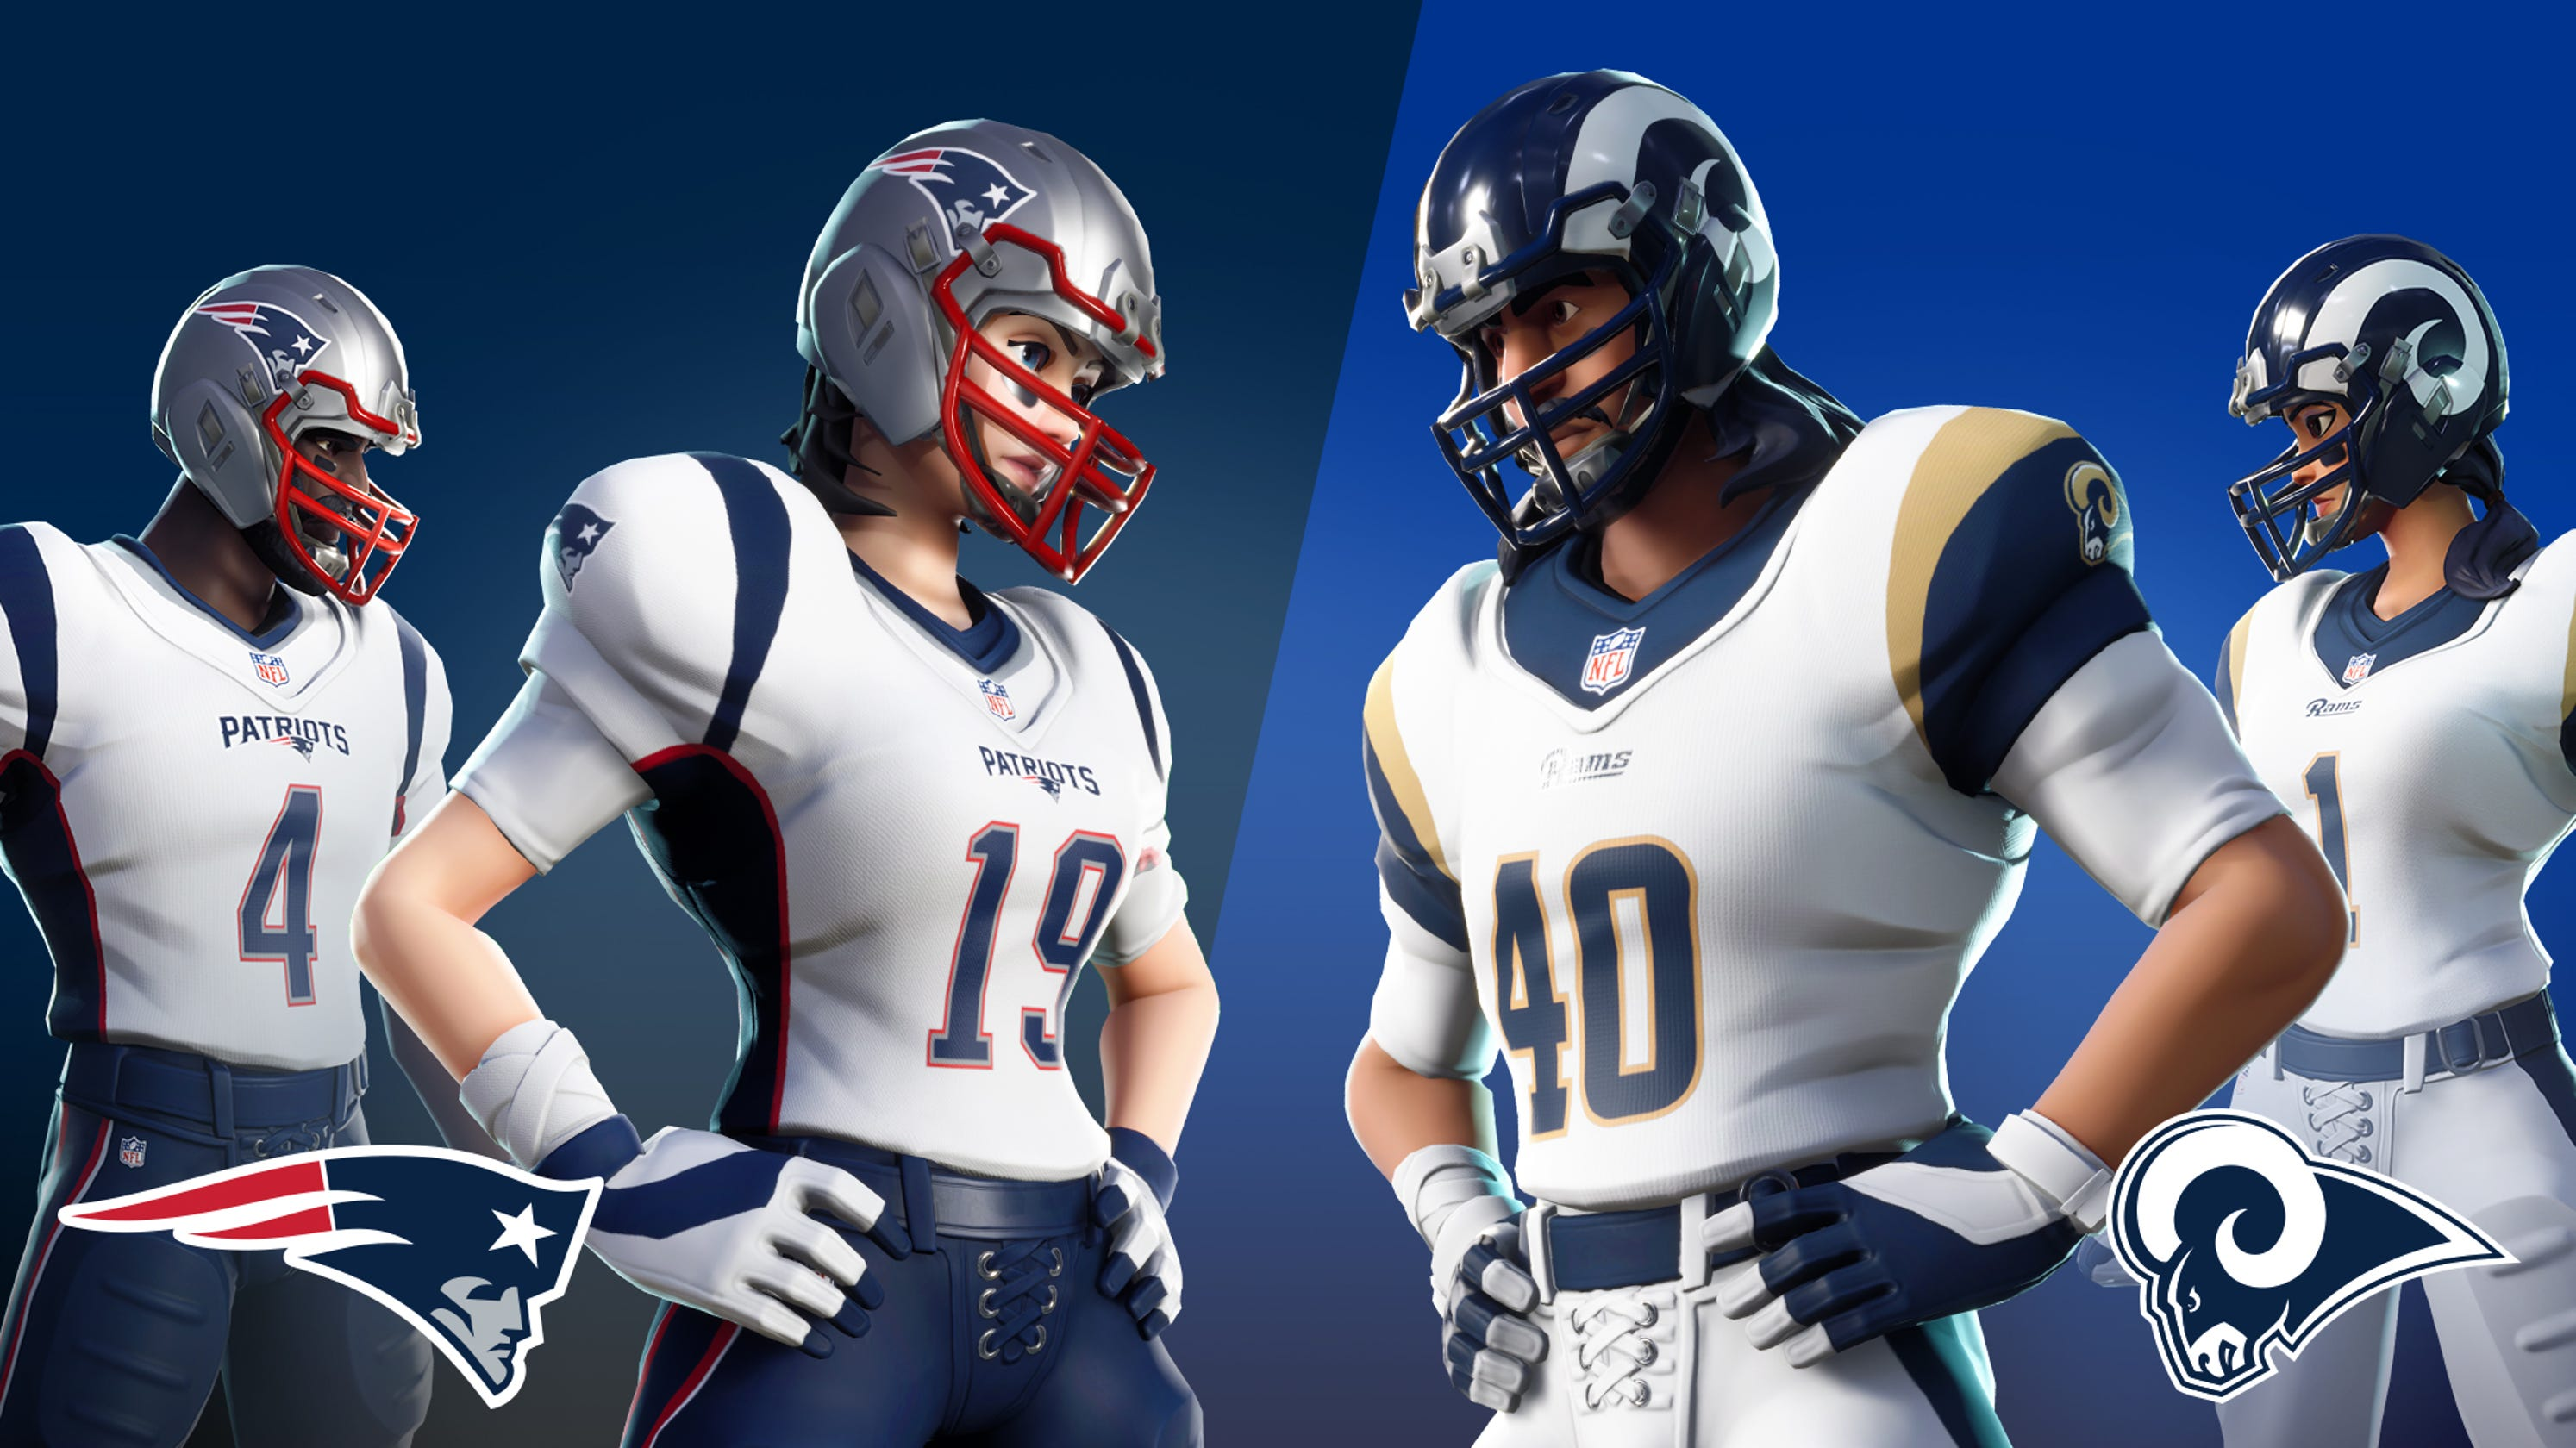 570ca42b2a9 'Fortnite' kicks off Super Bowl weekend with return of NFL outfits